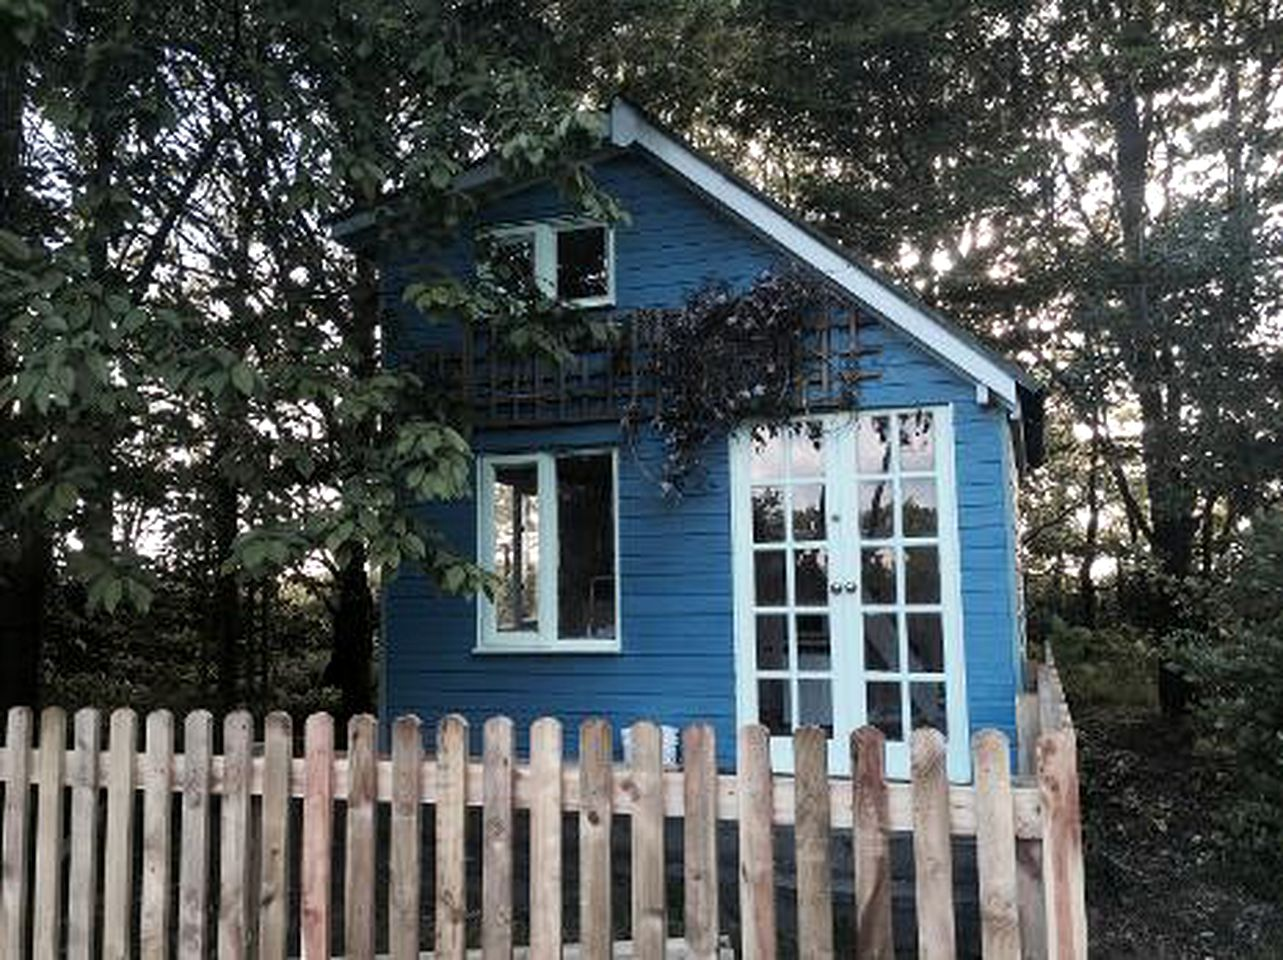 Cabins (Umberleigh, England, United Kingdom)